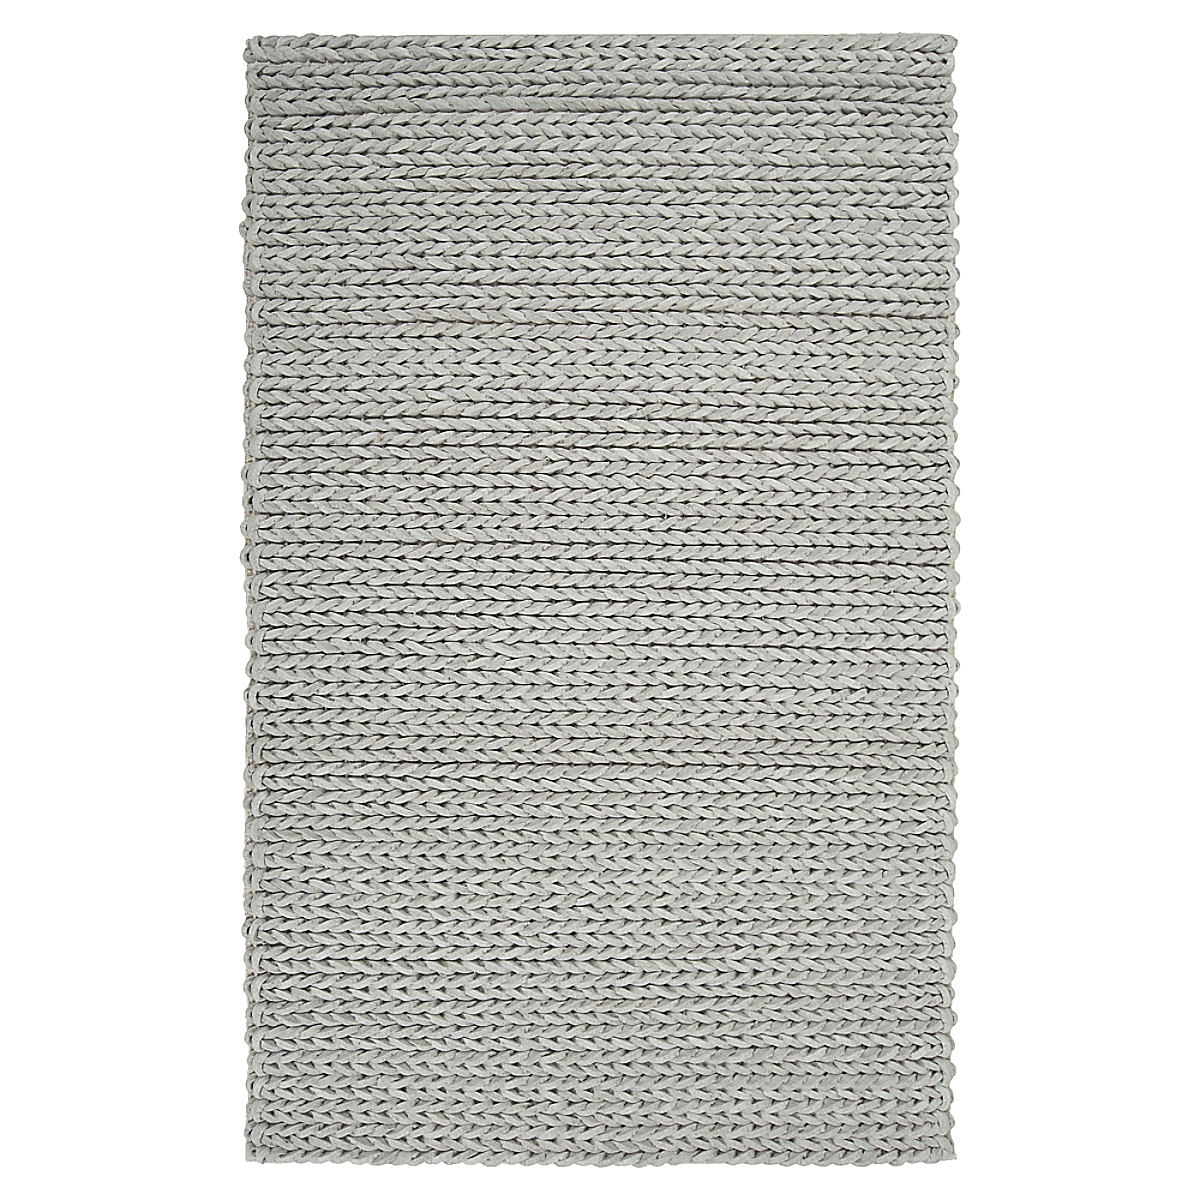 Fishtail Felted Wool Rug - Gray